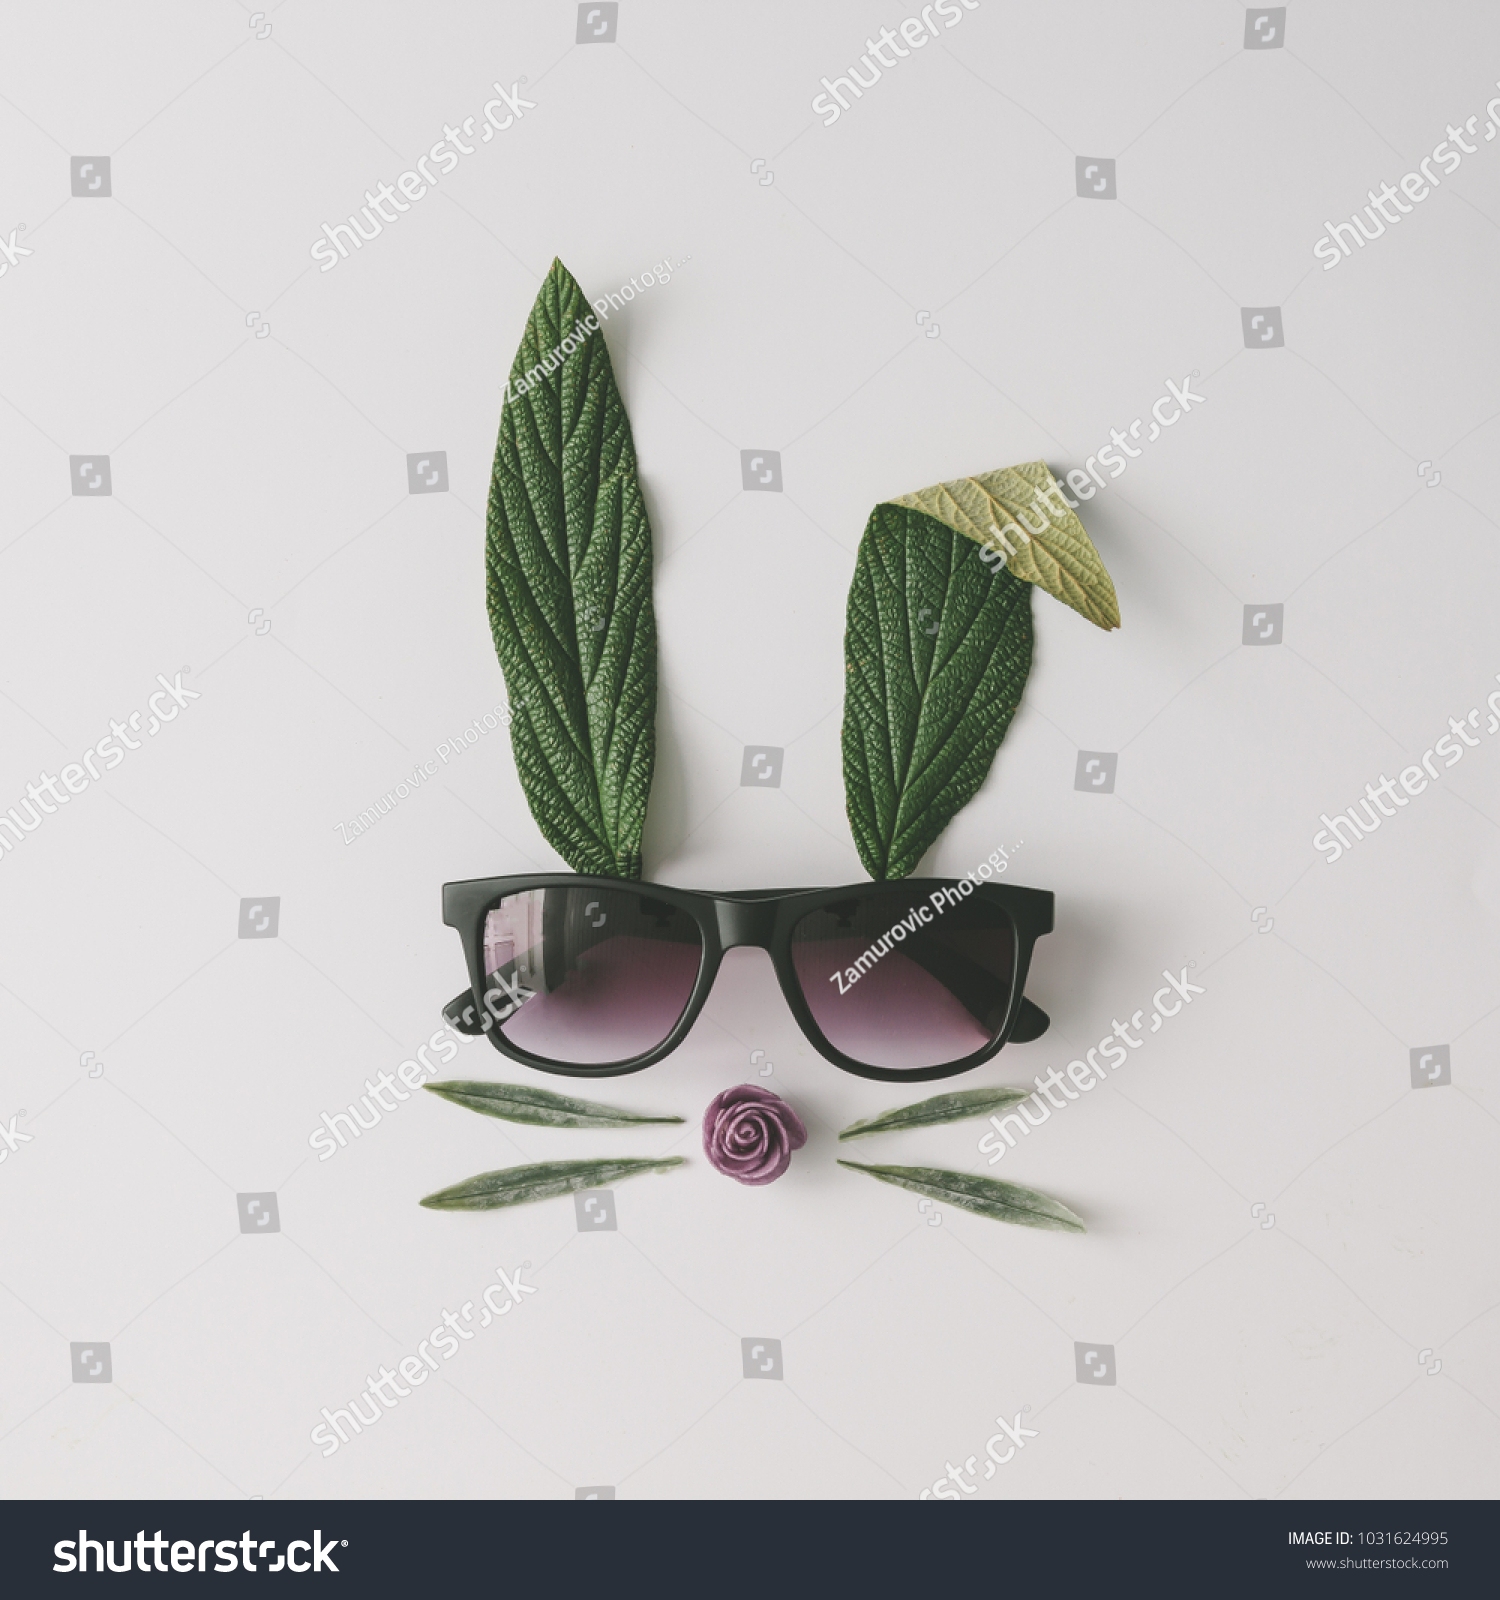 Bunny rabbit face made of natural green leaves with sunglasses on bright background. Easter minimal concept. Flat lay. #1031624995 - 123PhotoFree.com